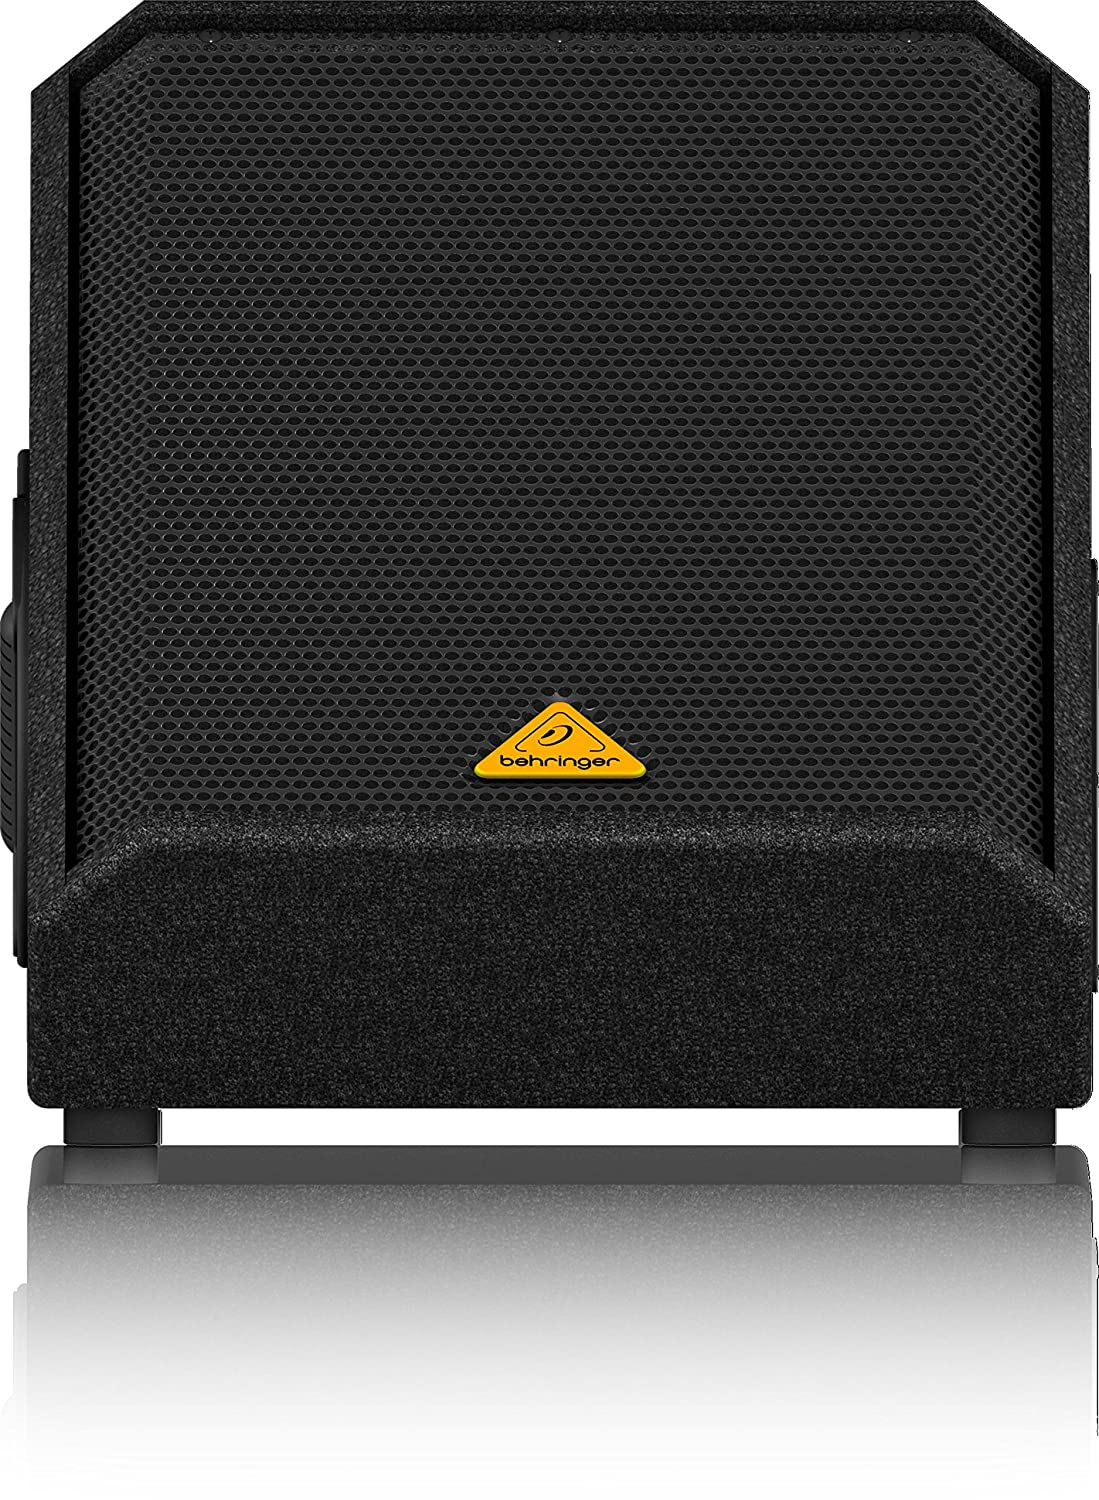 800-Watt Floor Monitor with 12 Woofer and 1.75 Titanium Compression Driver Behringer VP1220F